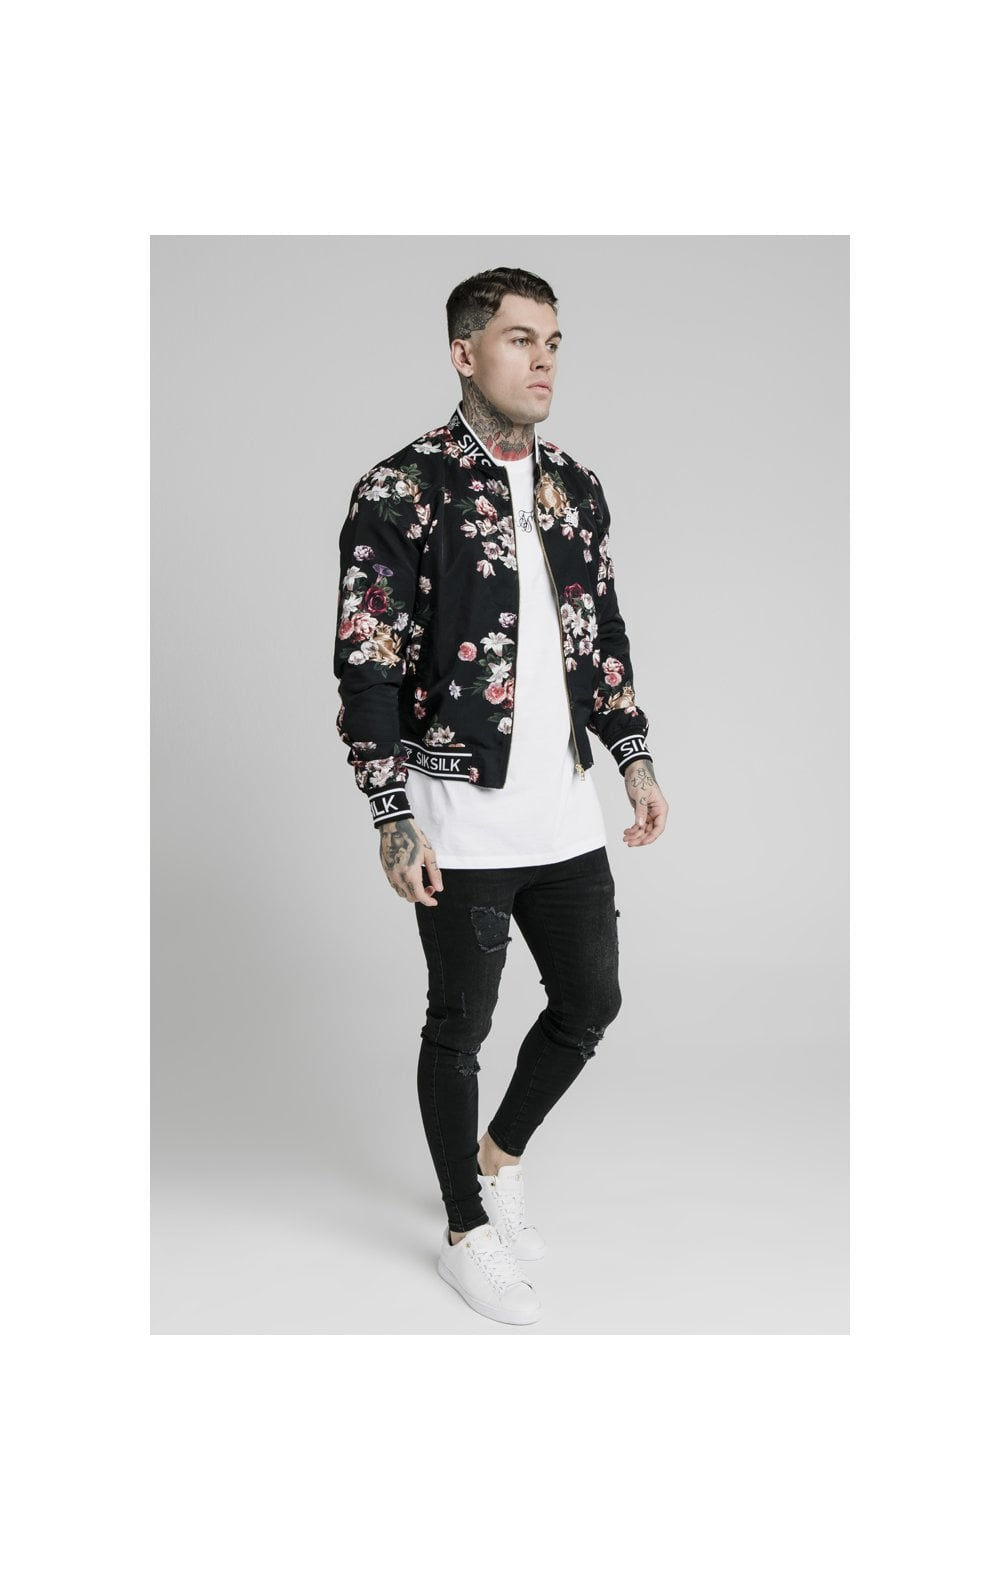 Load image into Gallery viewer, SikSilk Prestige Floral Bomber - Black (4)